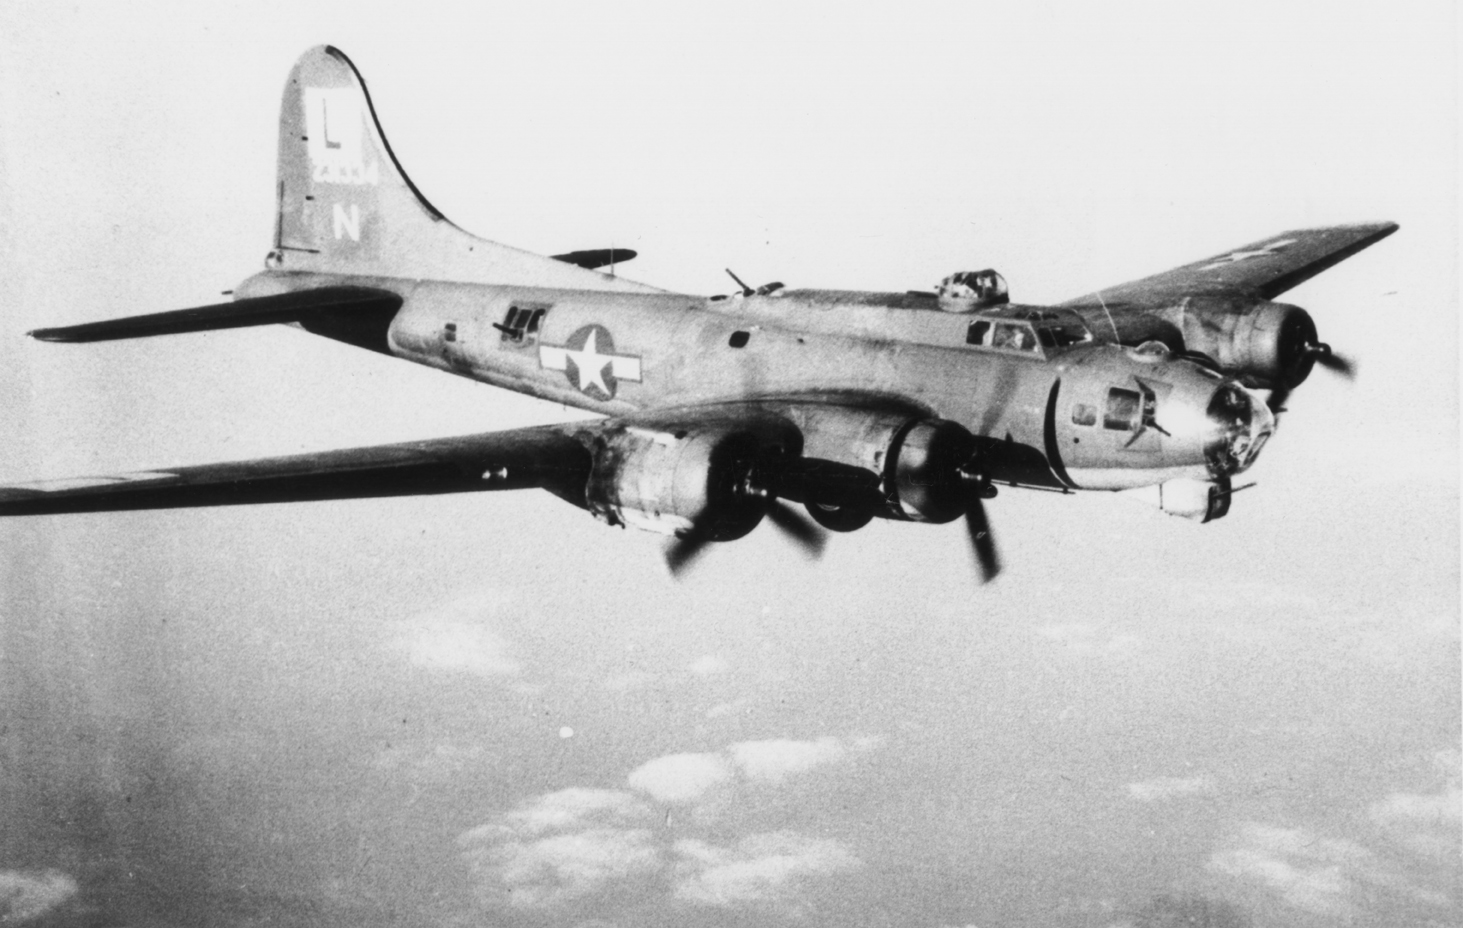 B-17 #42-31334 / Three Cads And A Lad